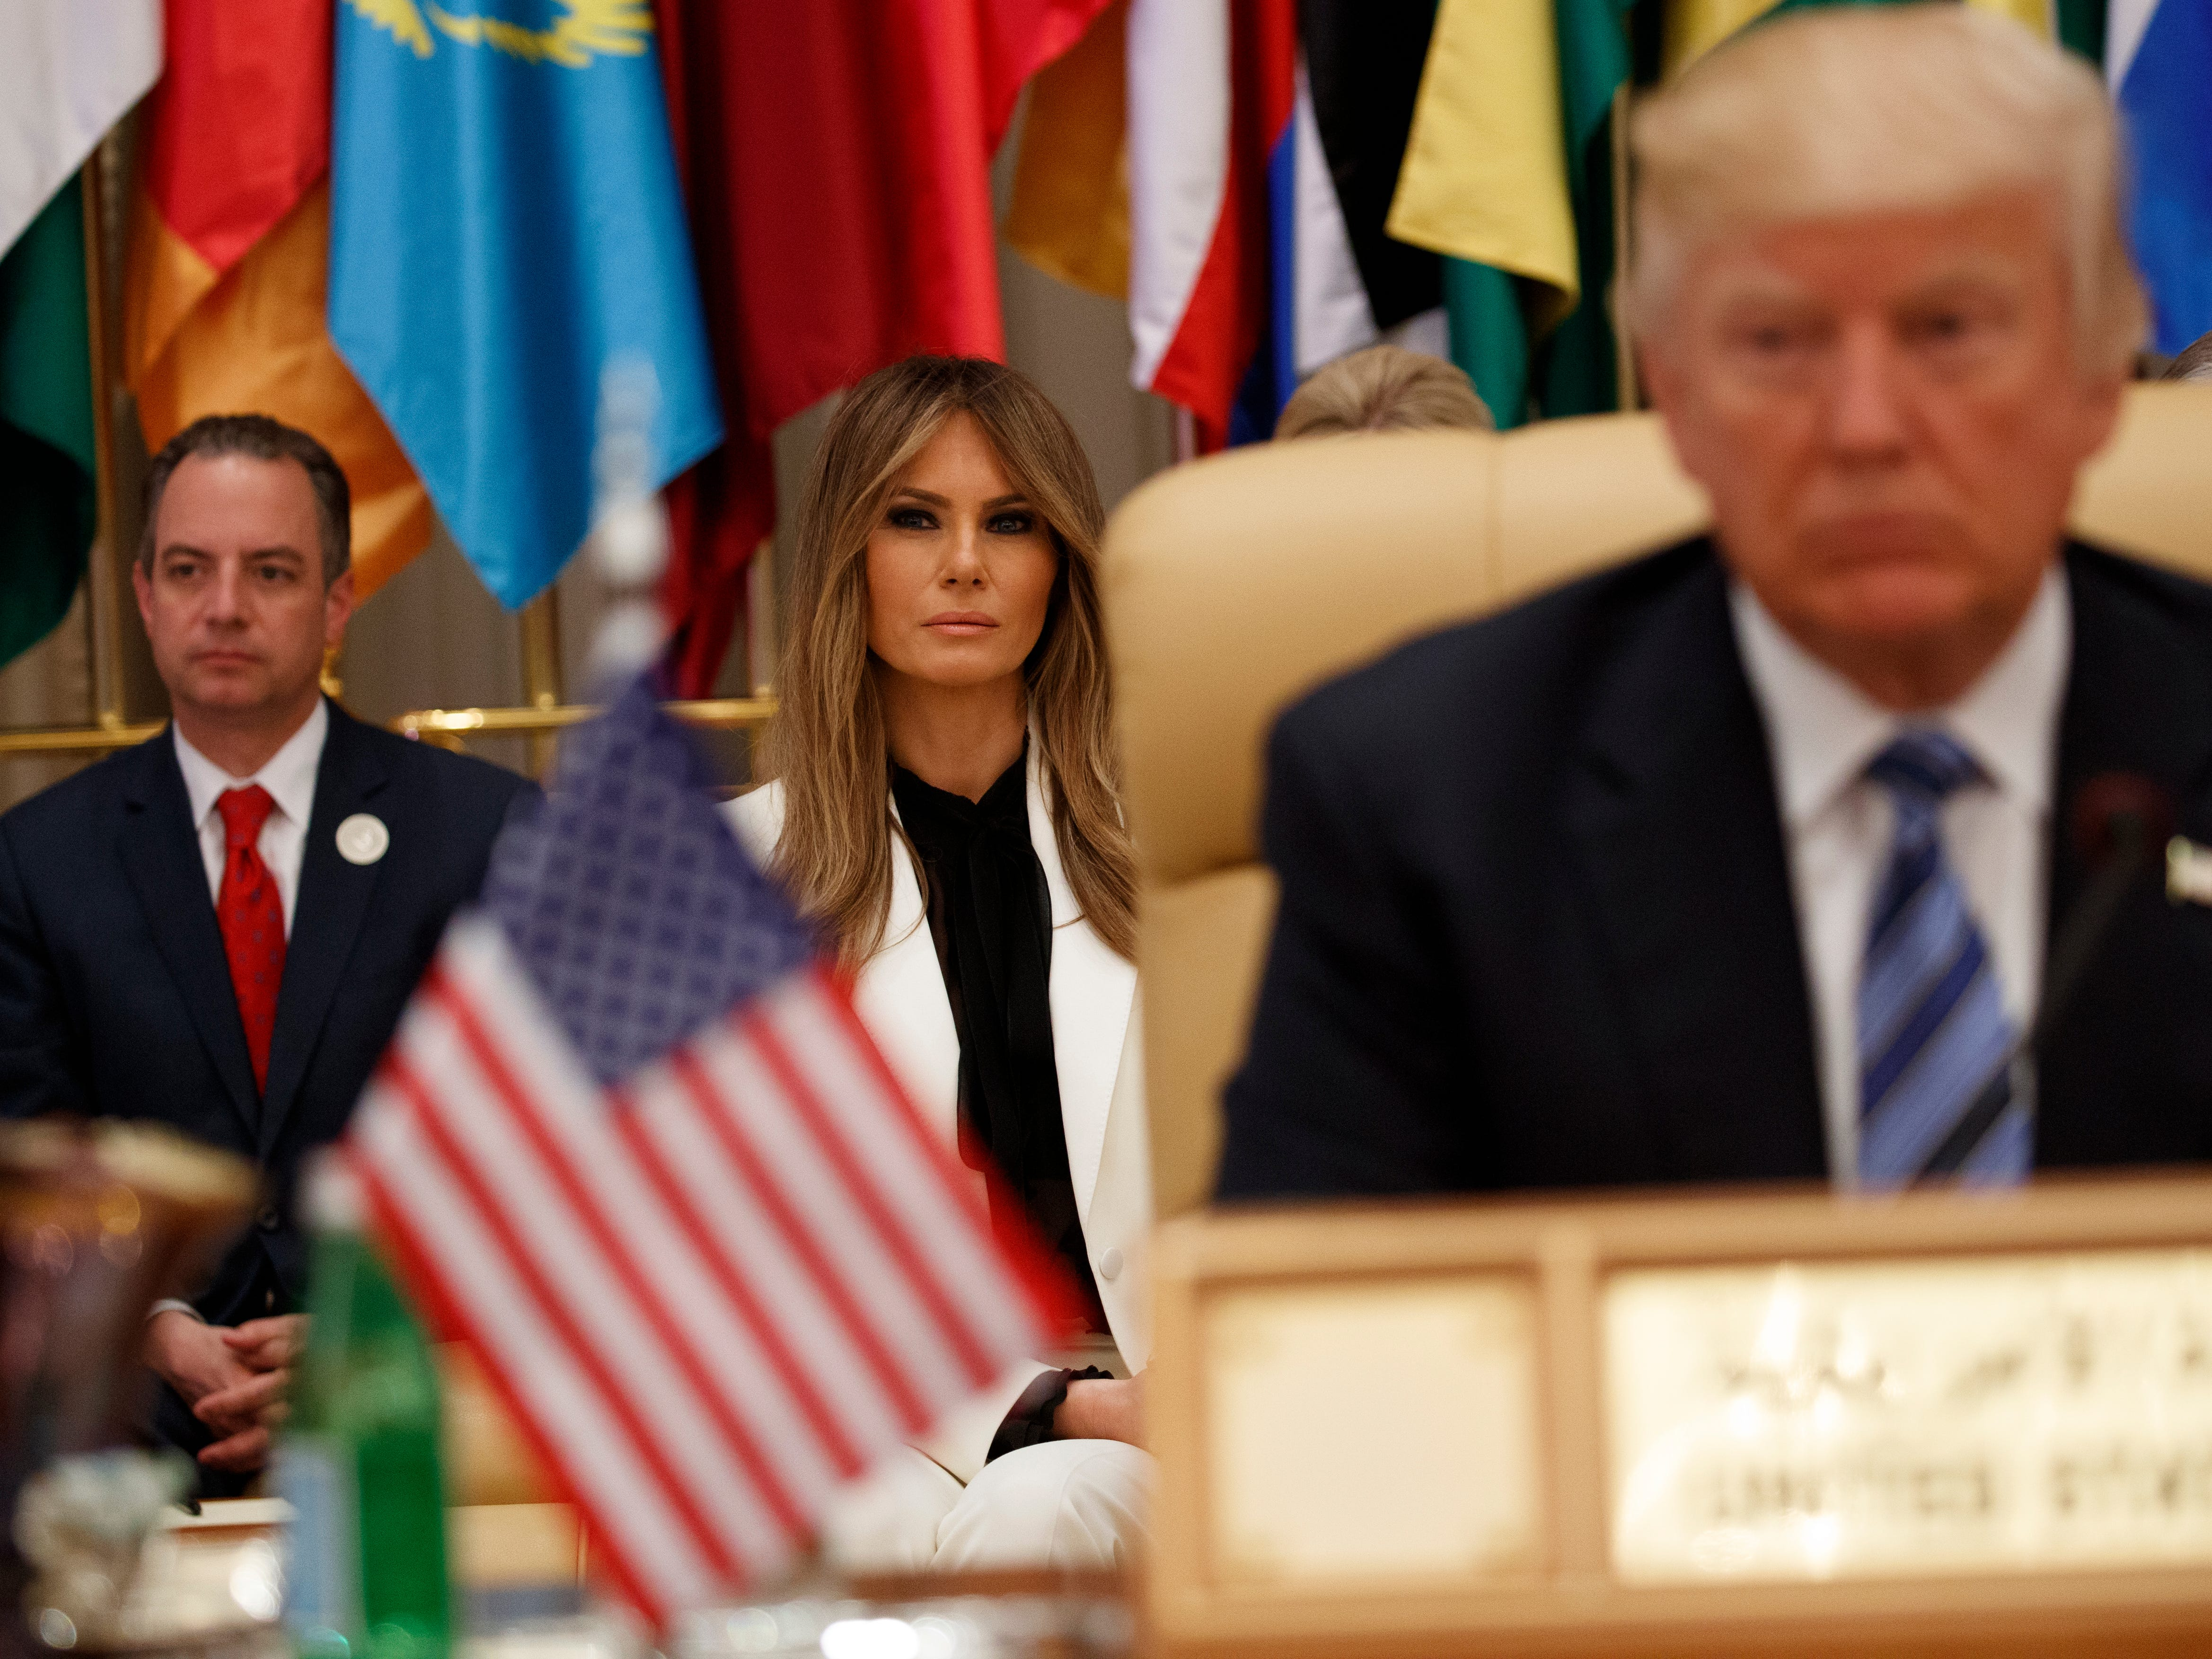 White House chief of staff Reince Priebus (left), and first Lady Melania Trump wait for President Donald Trump to deliver a speech to the Arab Islamic American Summit, at the King Abdulaziz Conference Center in Riyadh, Saudi Arabia.